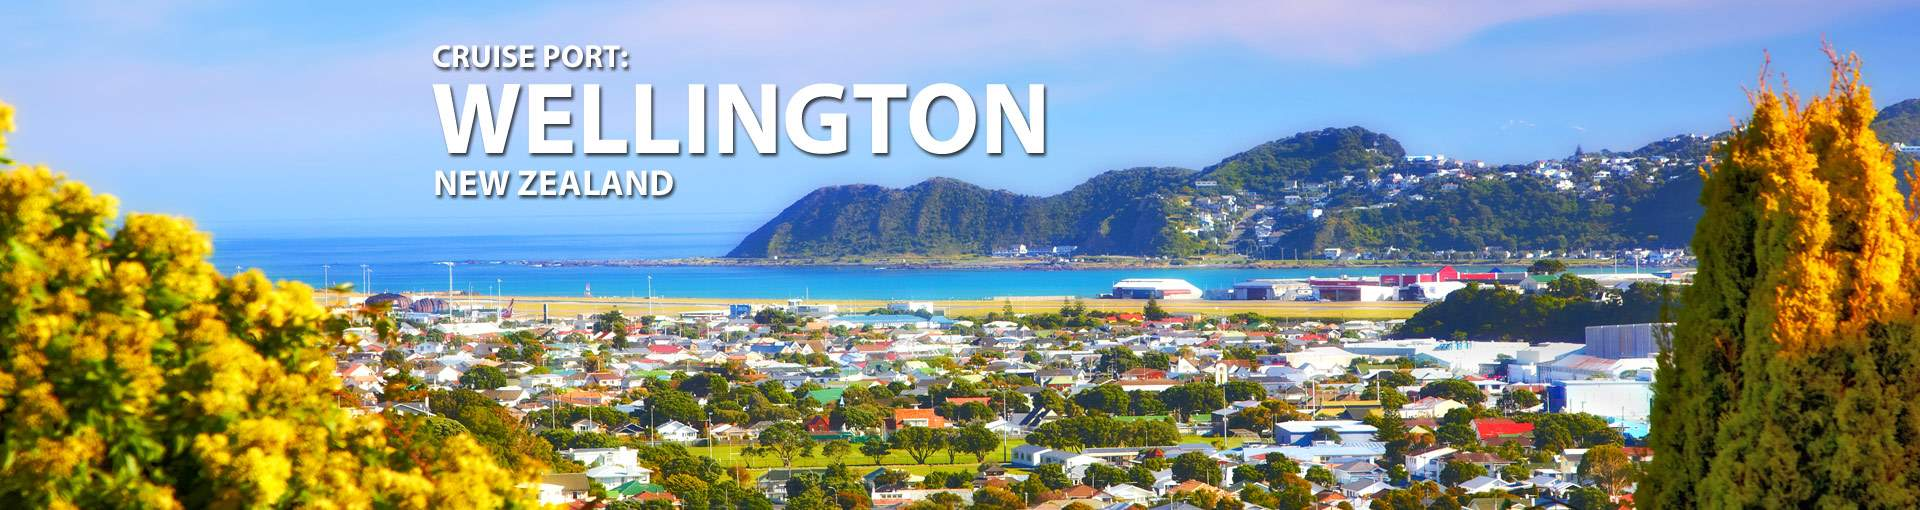 Cruises from Wellington, New Zealand